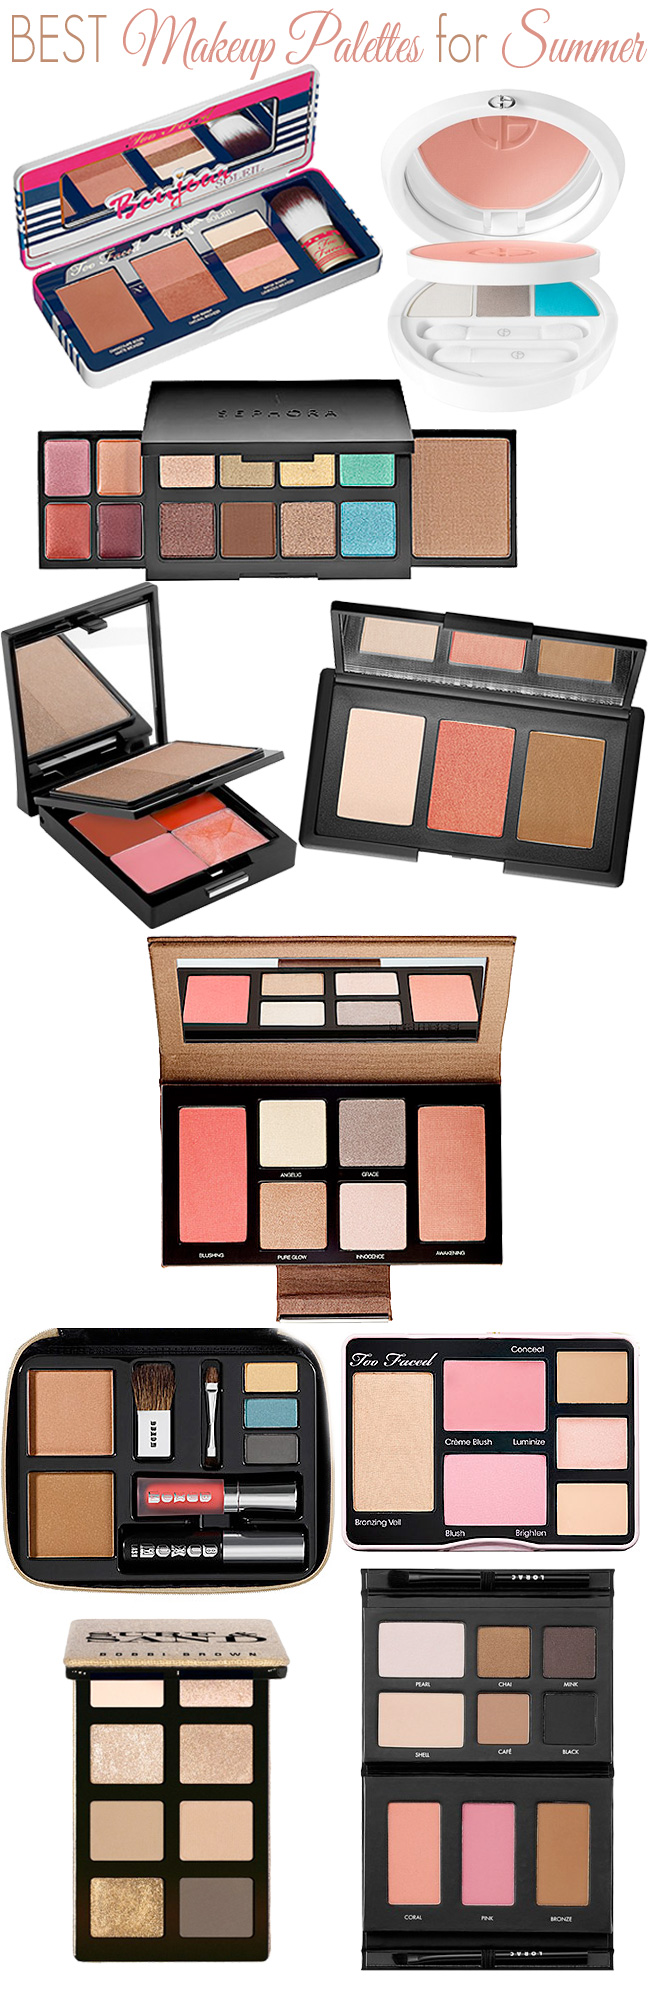 Best Makeup Palettes for Summer